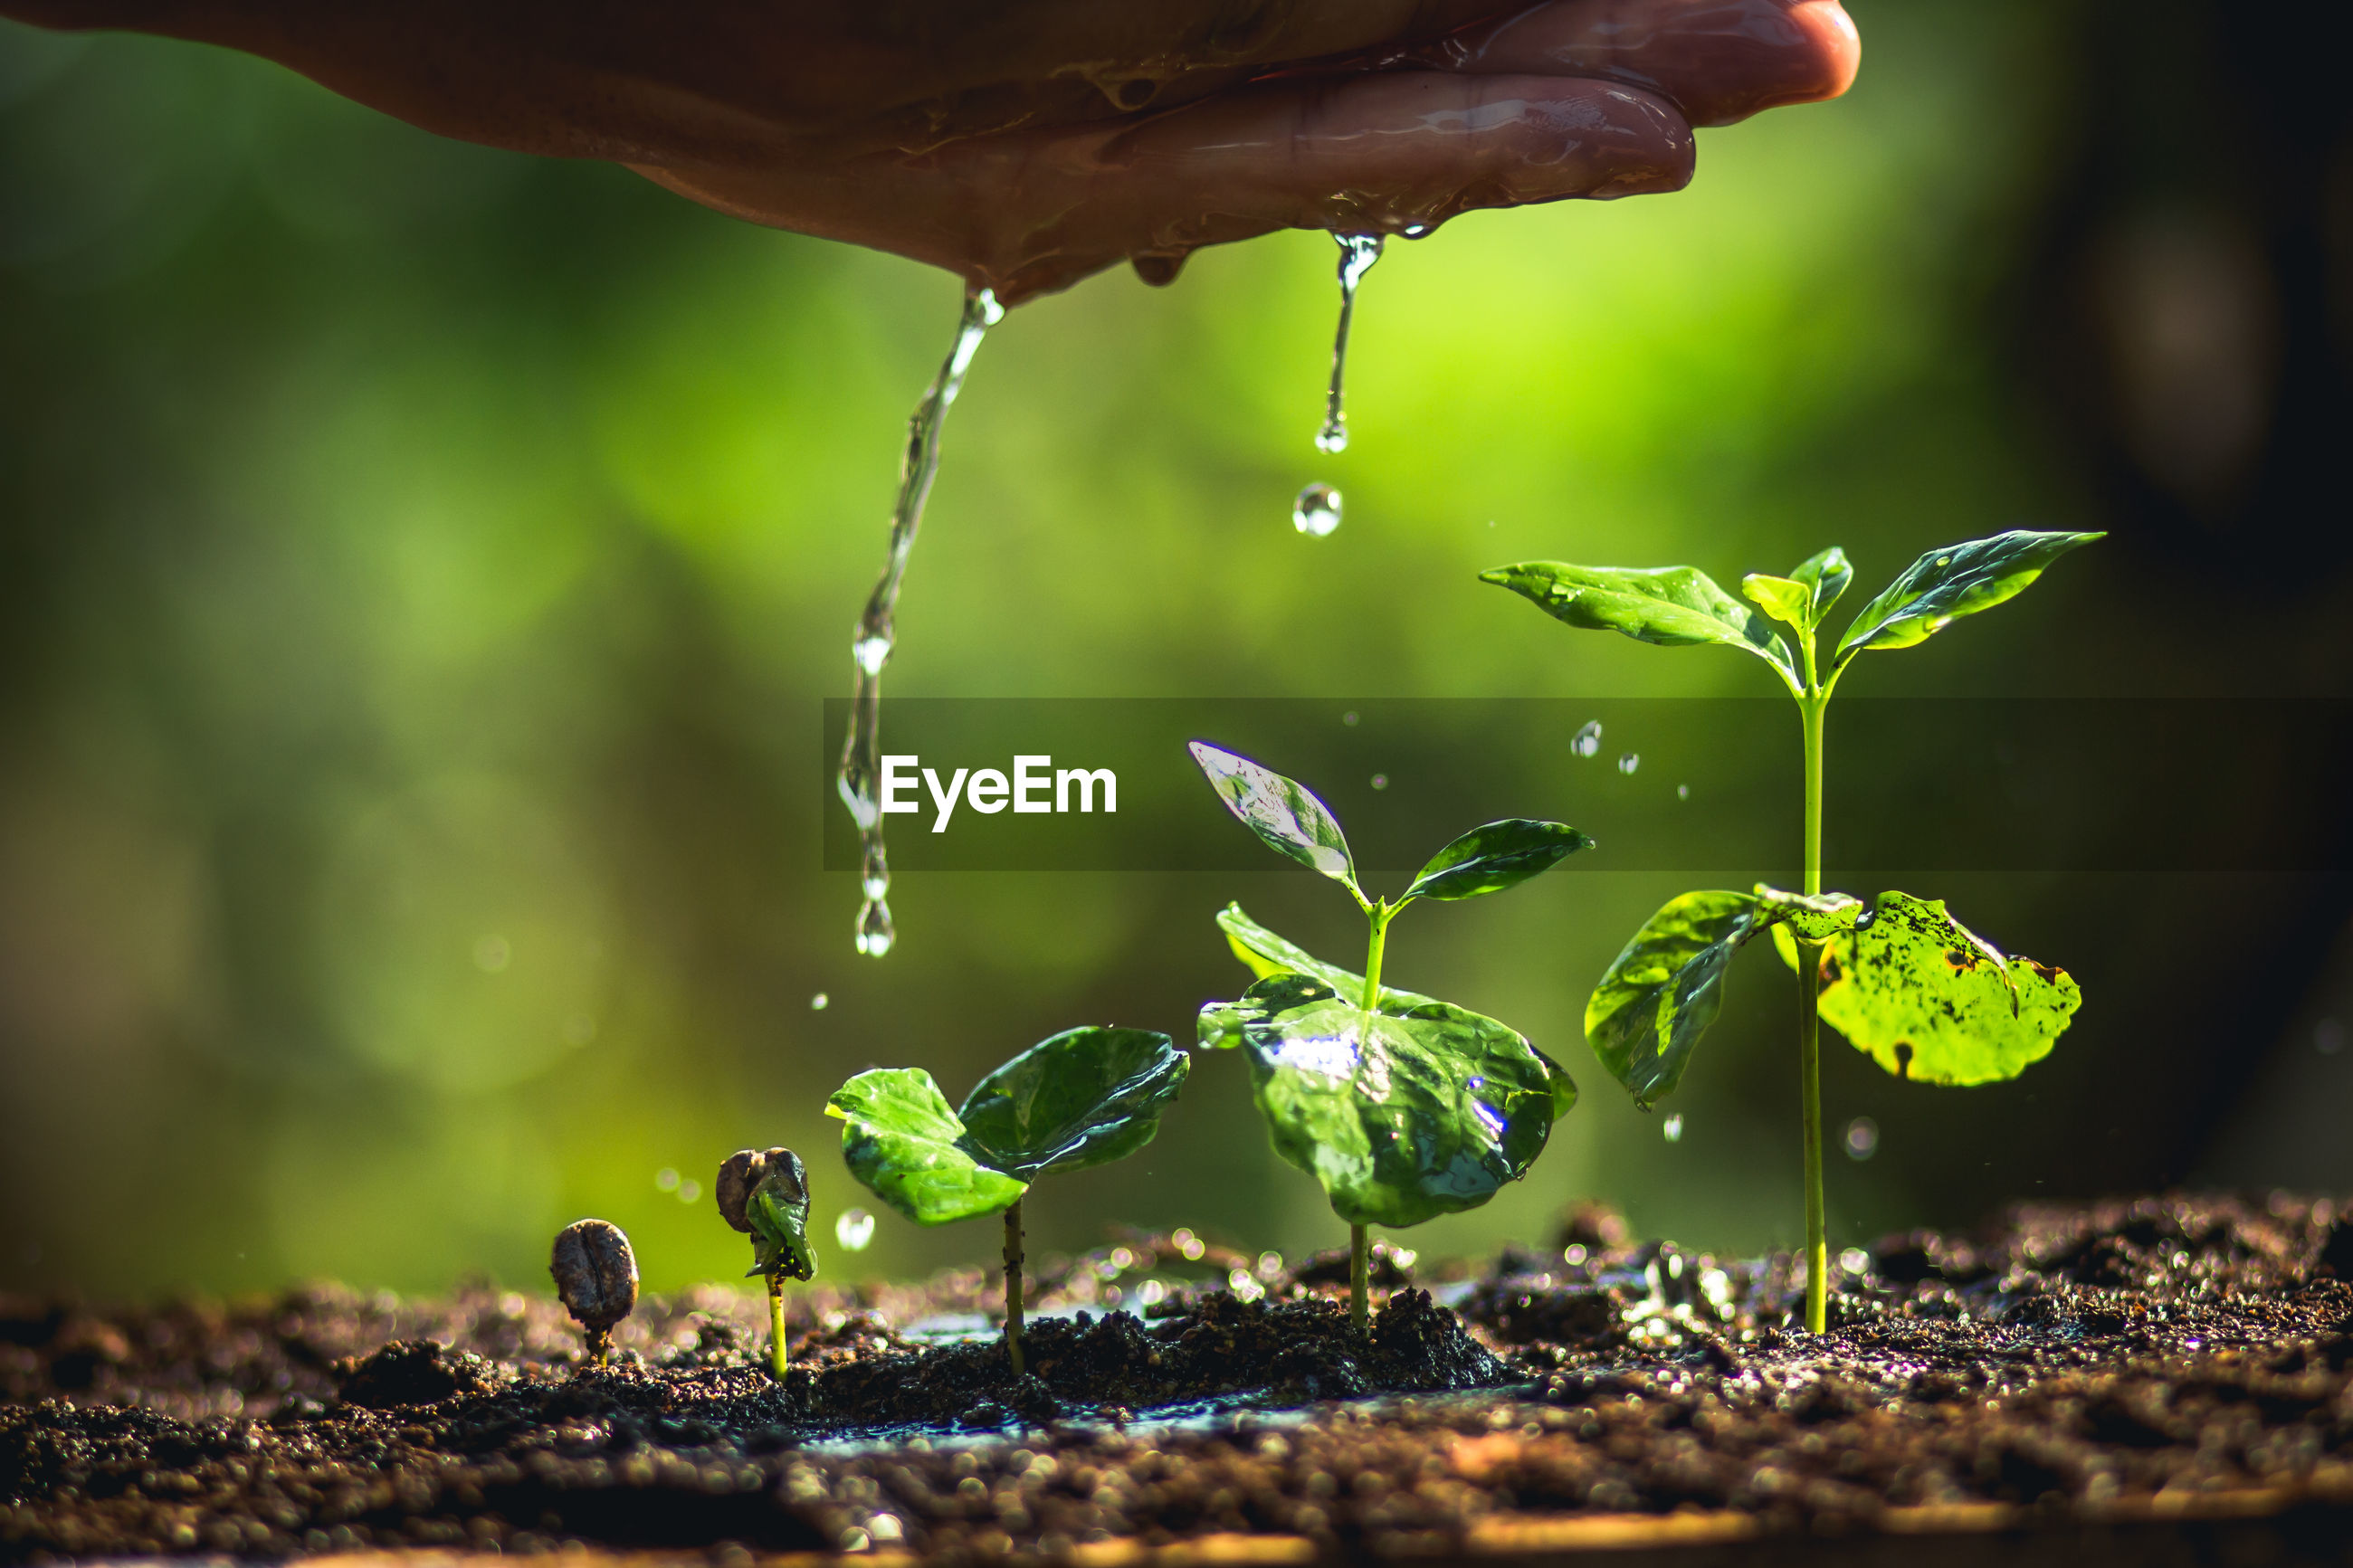 Cropped image of hands pouring water on plants